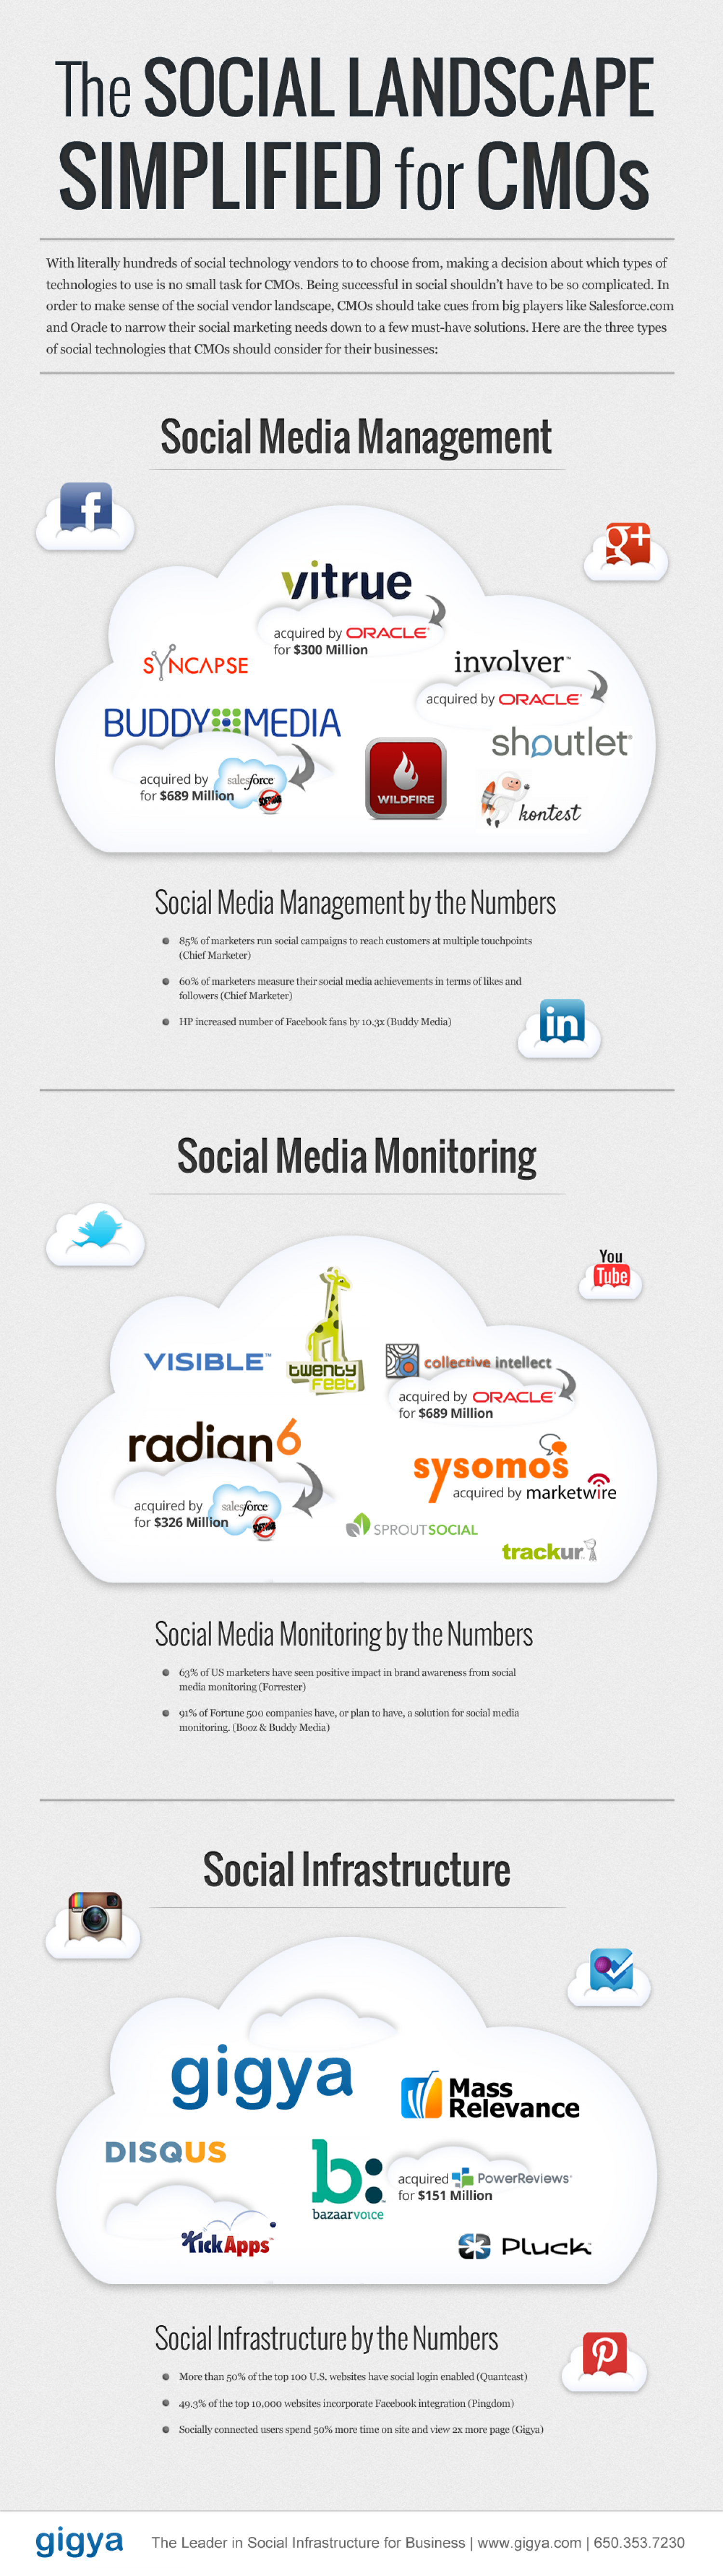 The Simplified Social Landscape Infographic